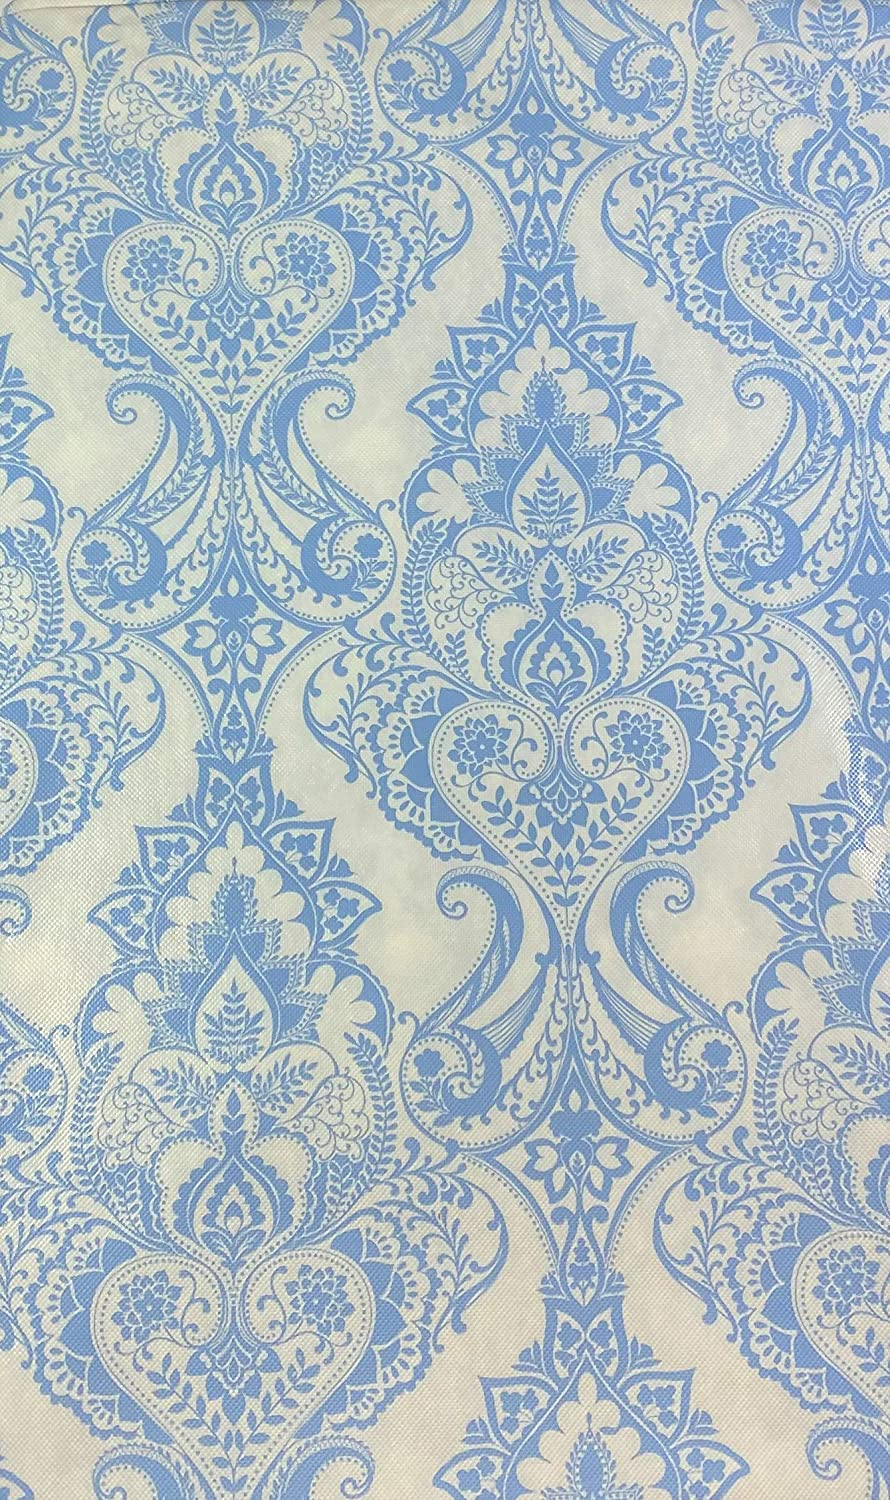 Baroque Medallion Vinyl Tablecloth White and Blue 60 Round